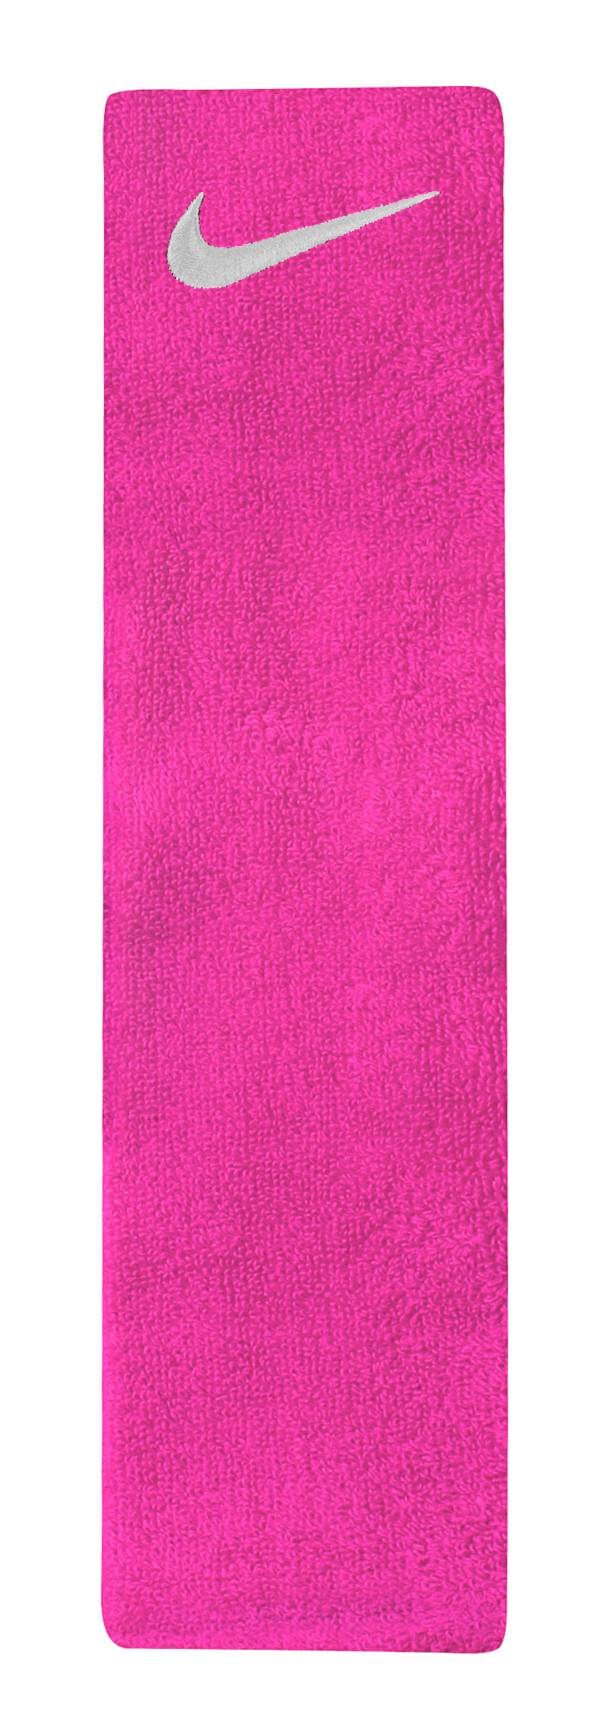 Nike BCA Football Towel product image